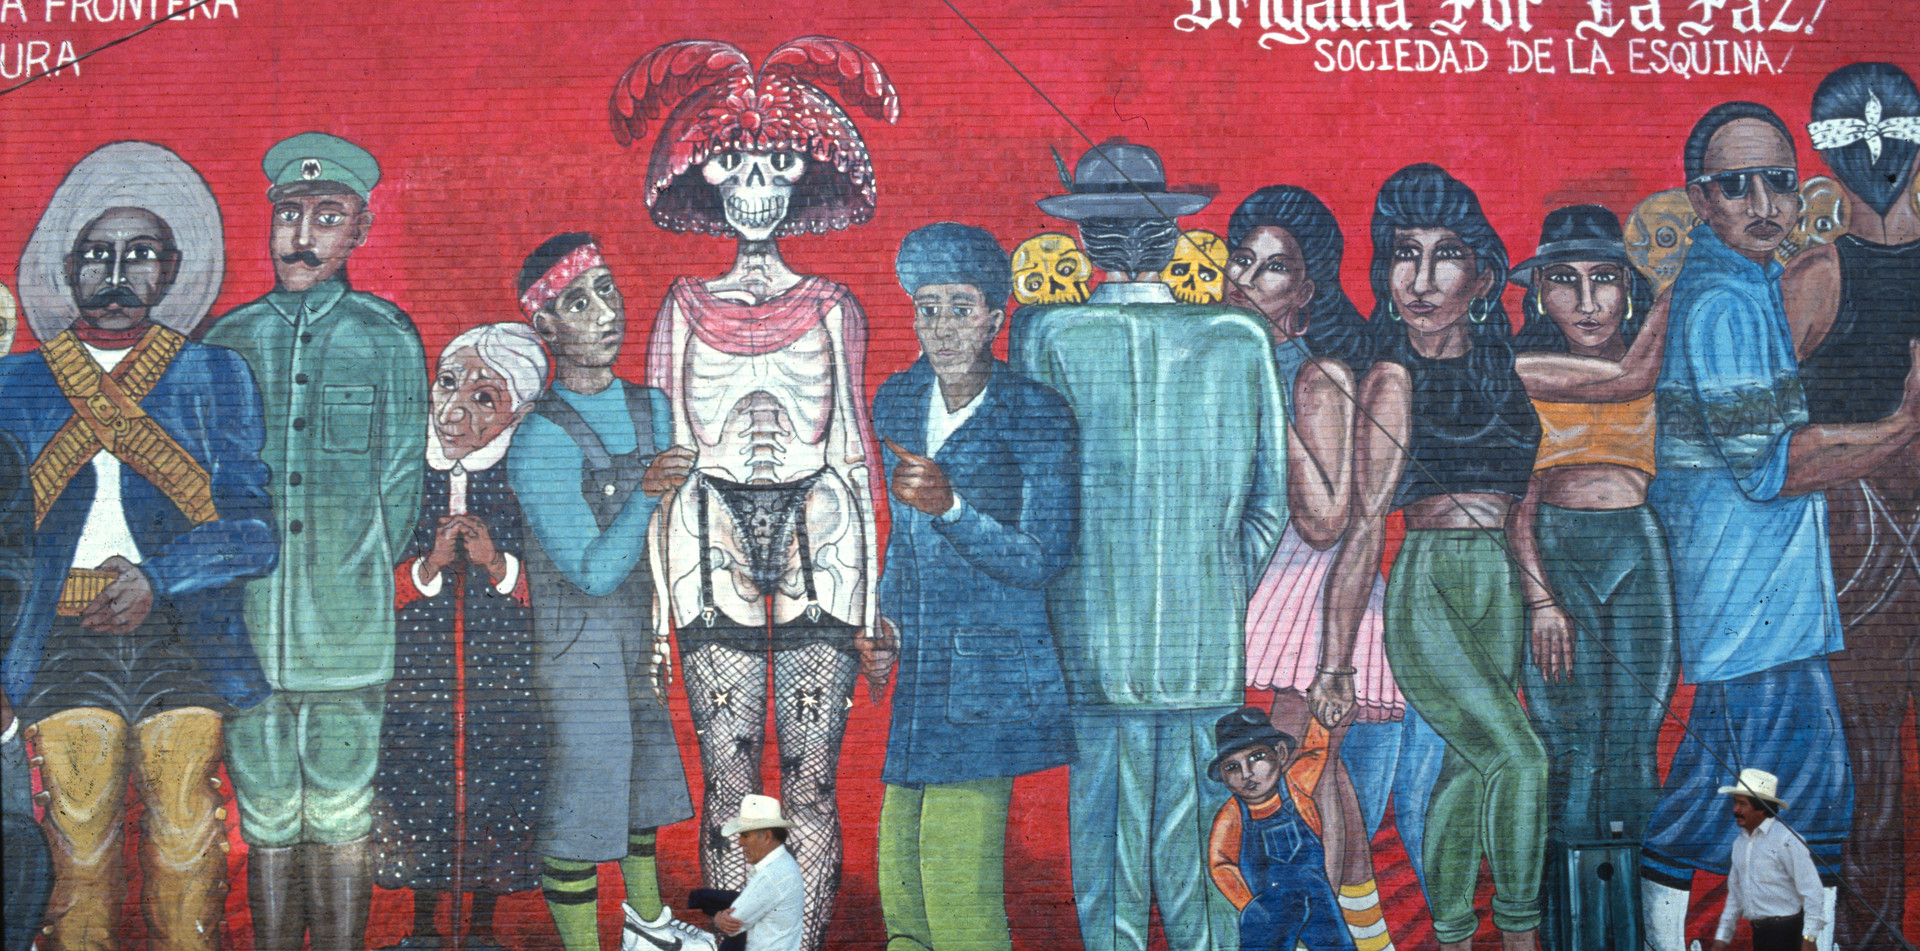 Mural by grassroot art collective in Ciudad Juarez, Mexico